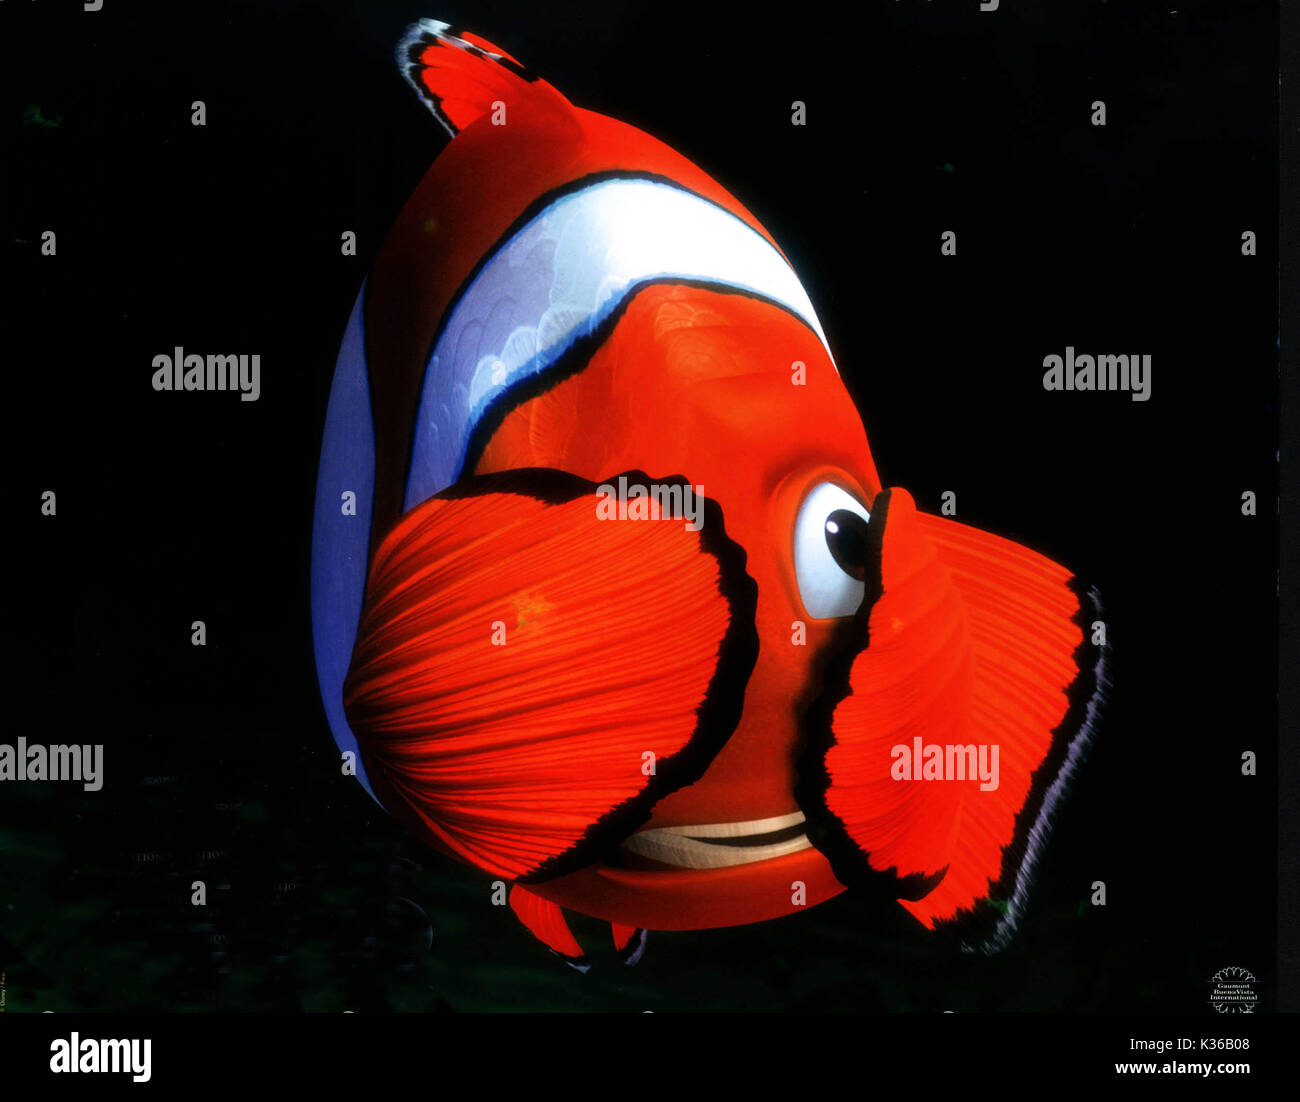 Finding Nemo Marlin Stock Photos & Finding Nemo Marlin Stock Images ...